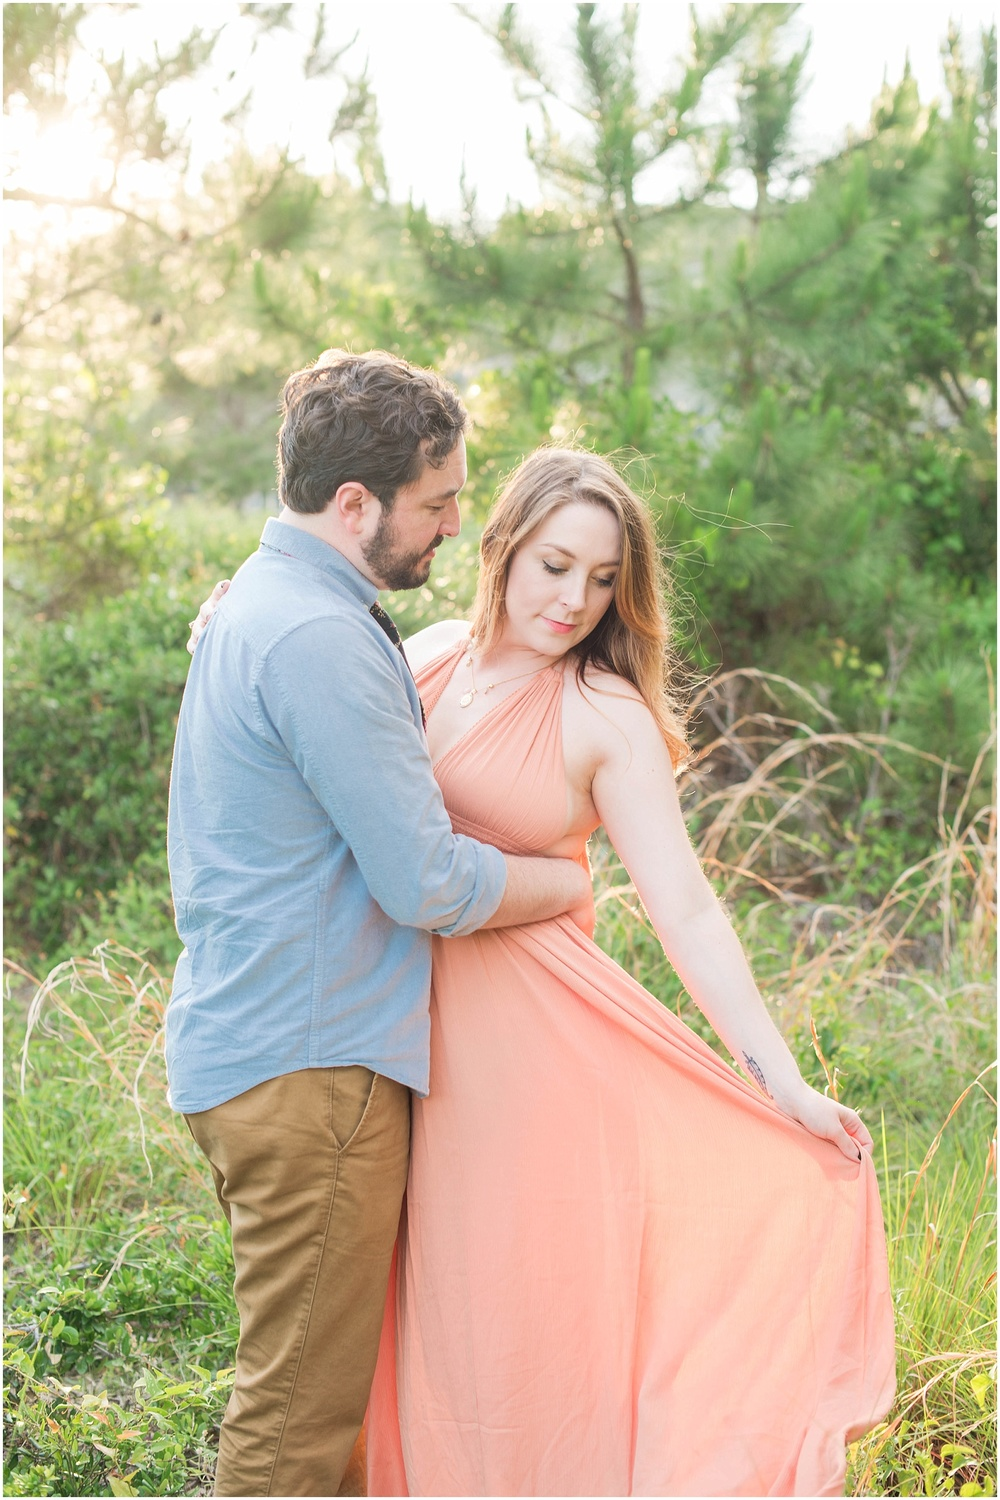 Hannah Leigh Photography Kiawah Island Anniversary Session_0385.jpg